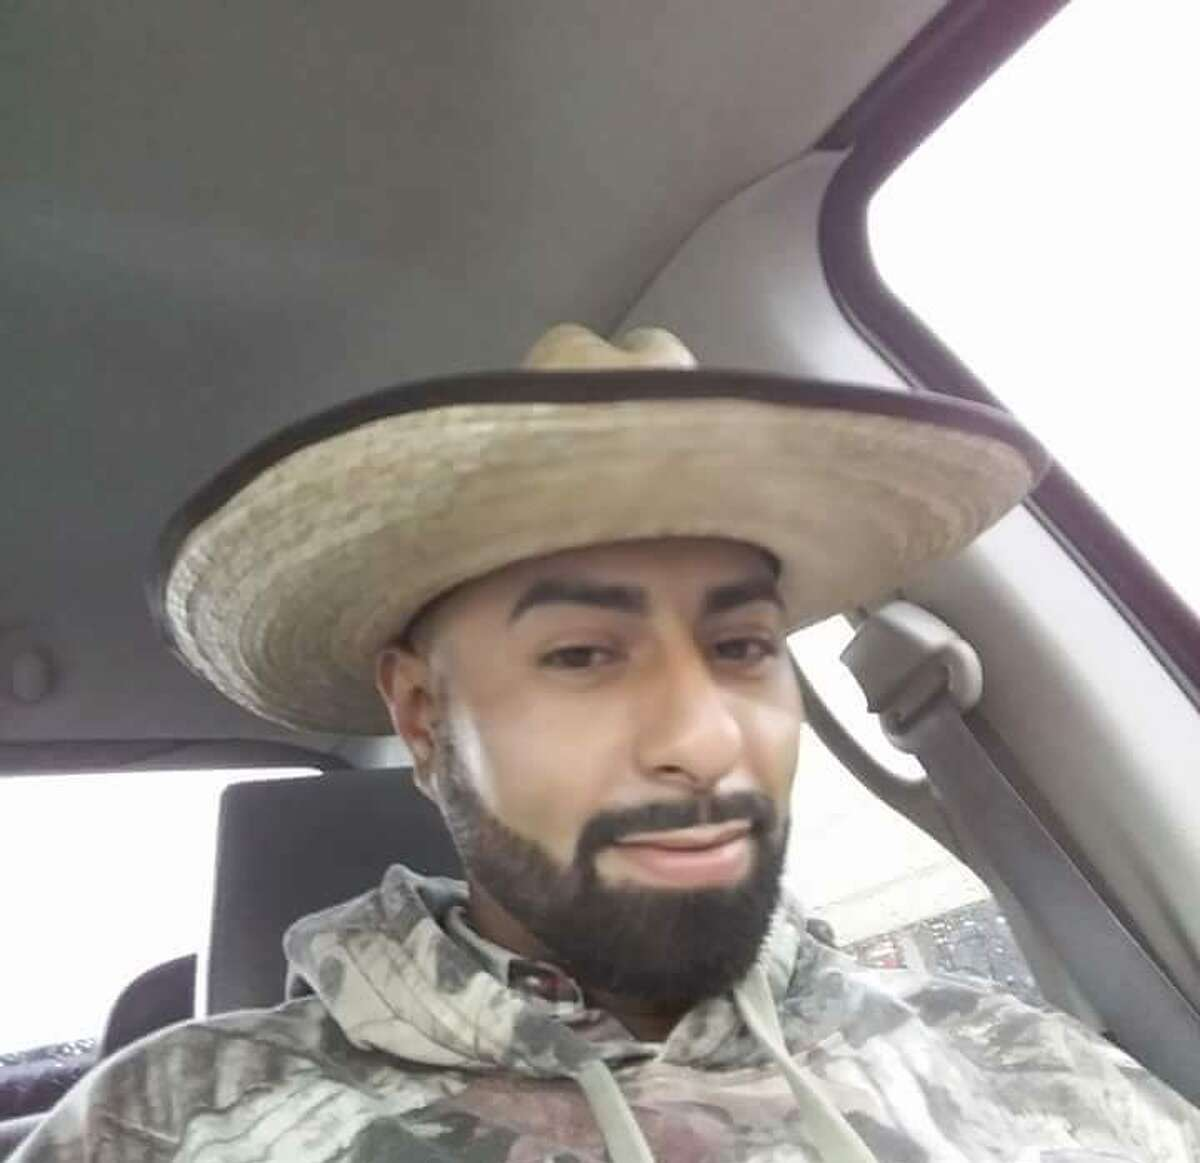 Ray Jasso, 28, of New Caney, was hit and killed during a Fourth of July Party in the 18200 block of Emerald Court on Sunday, July 2, 2017. He was described as a loving father of two and a hard worker with big aspirations.